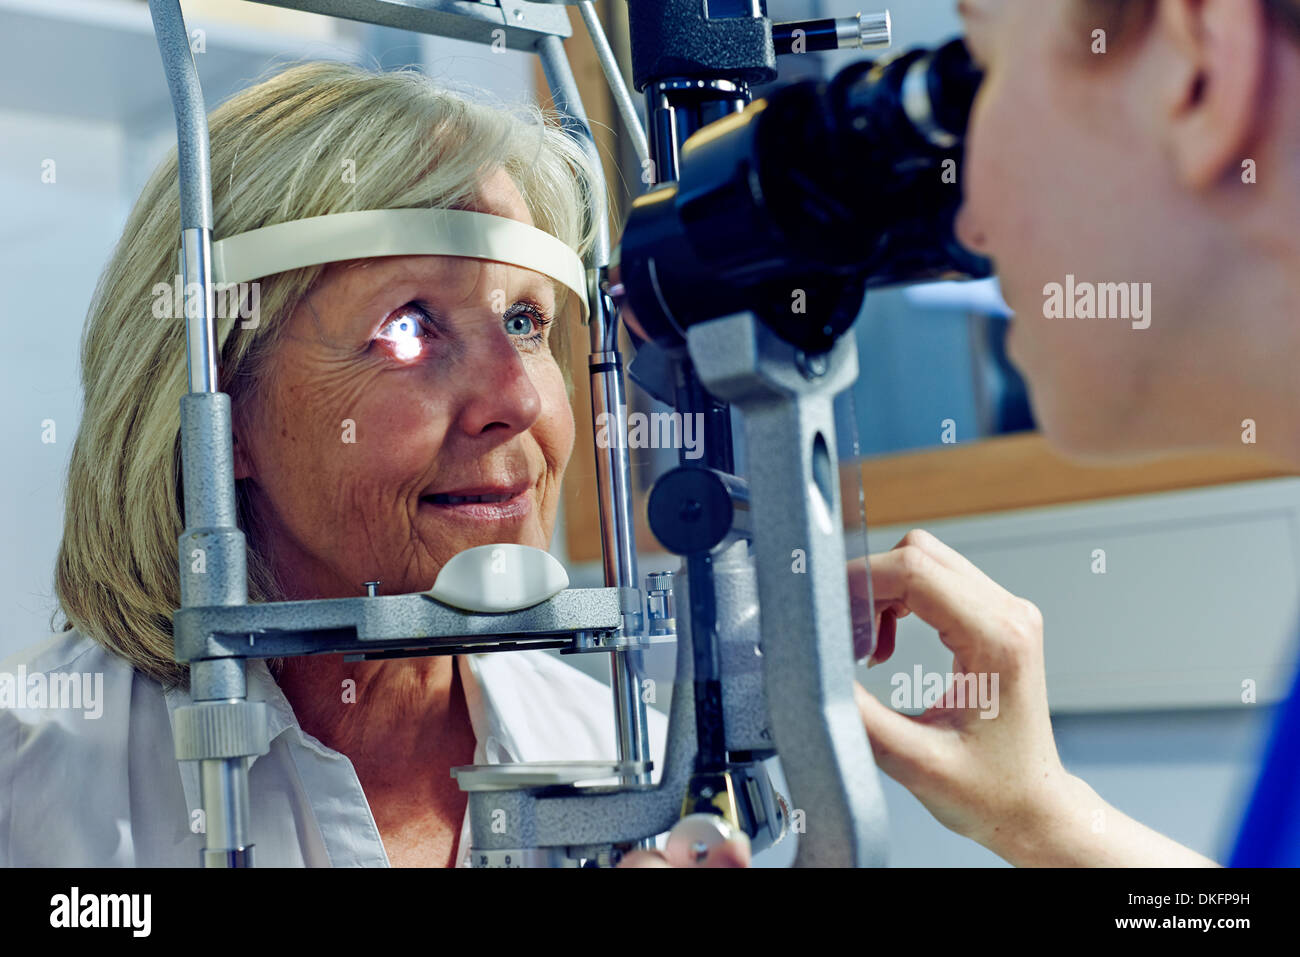 Female patient having eye tested in hospital - Stock Image